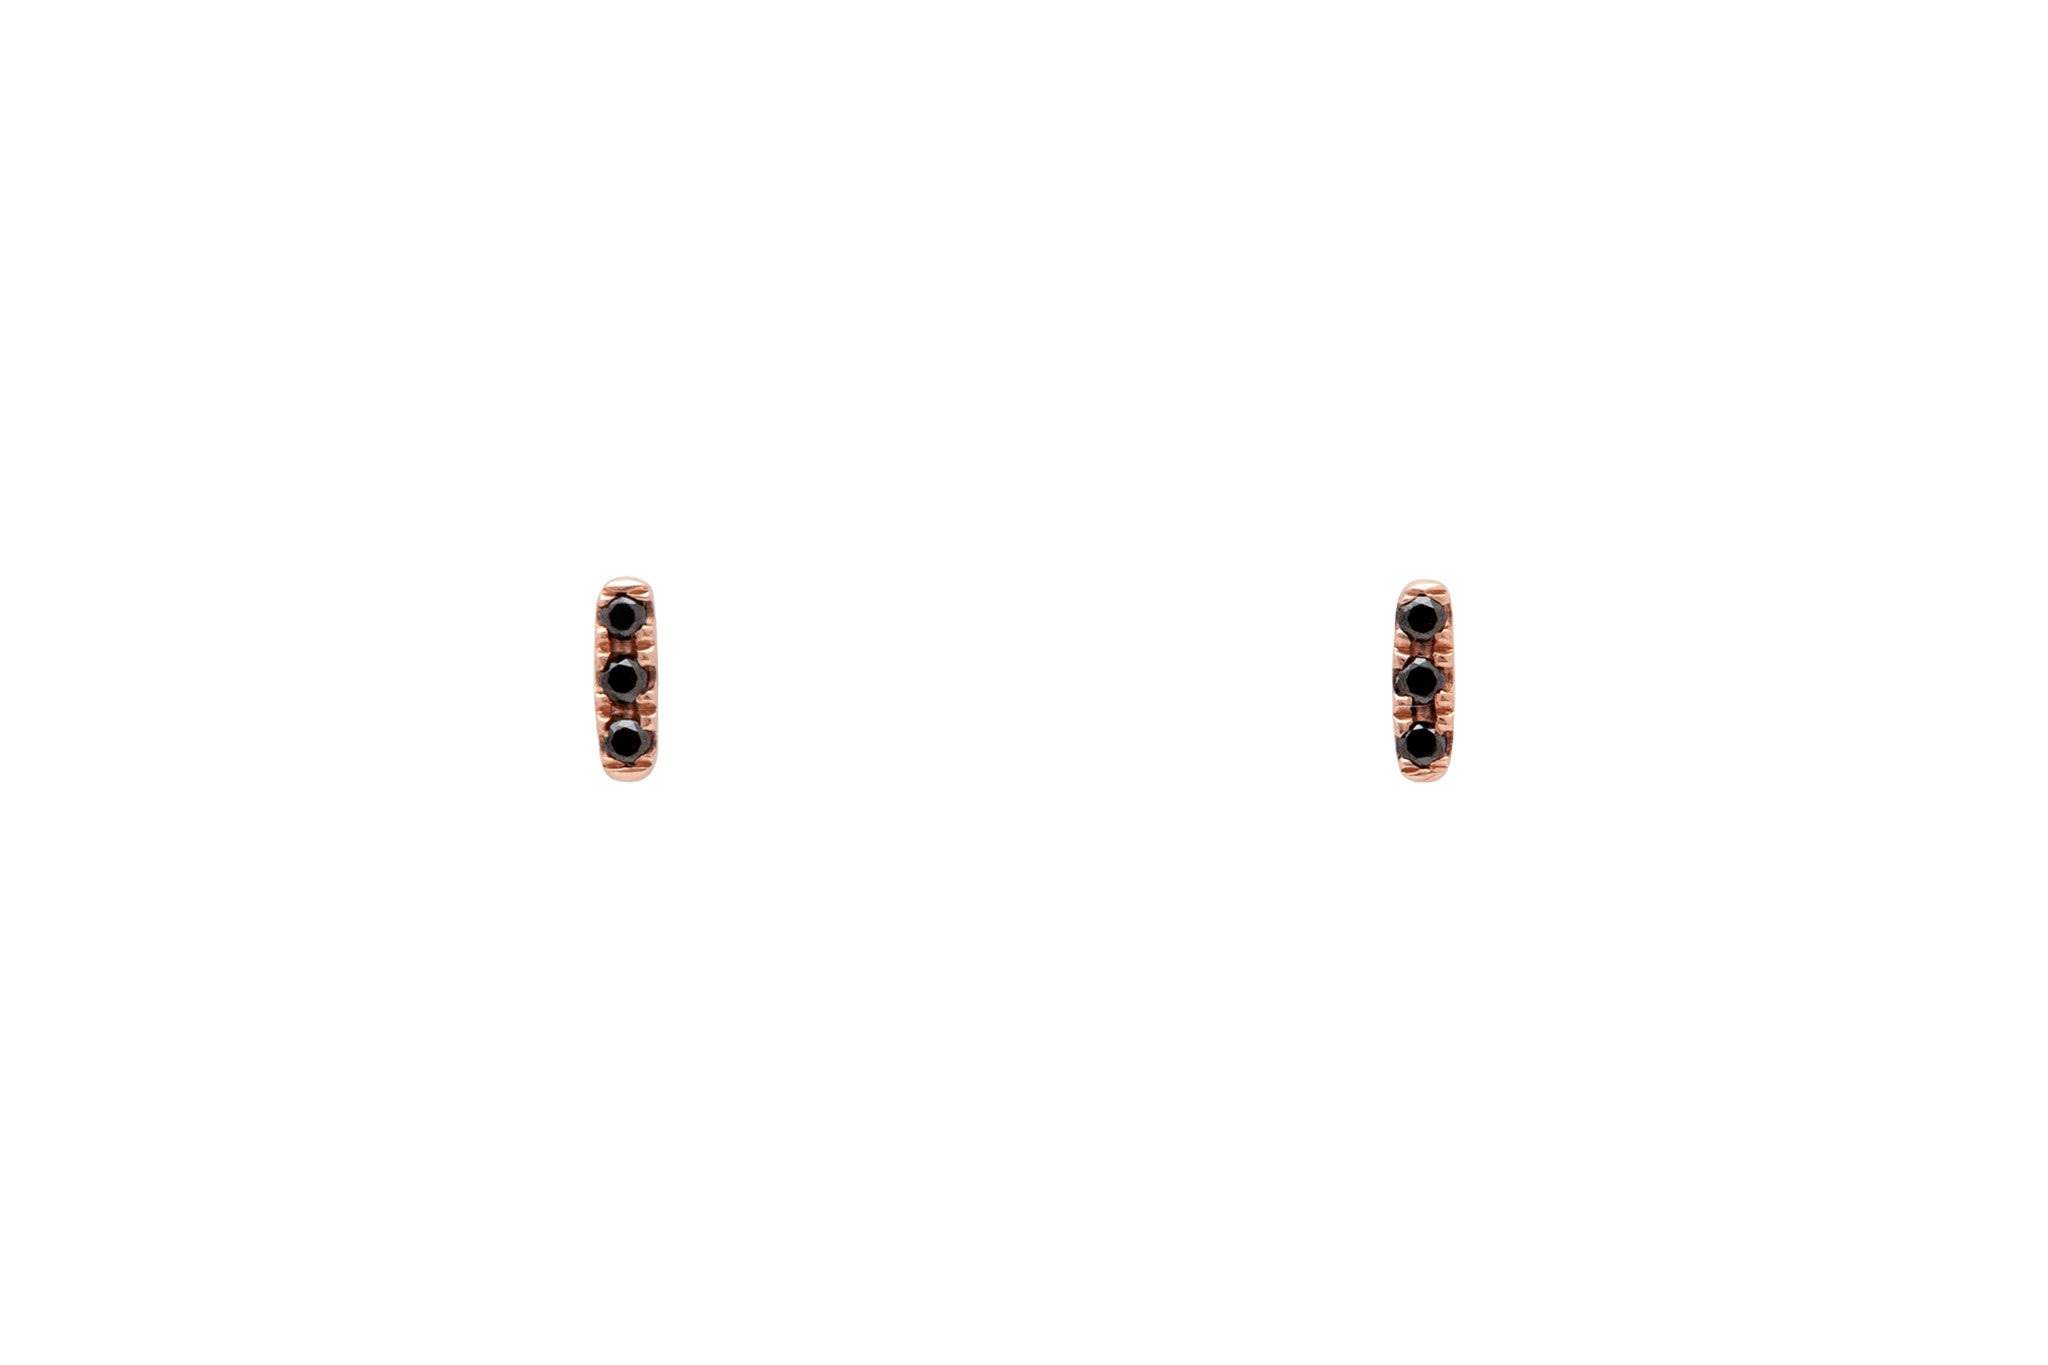 14k Rose Gold Micropavé Three Black Diamond Bar Earrings E2319